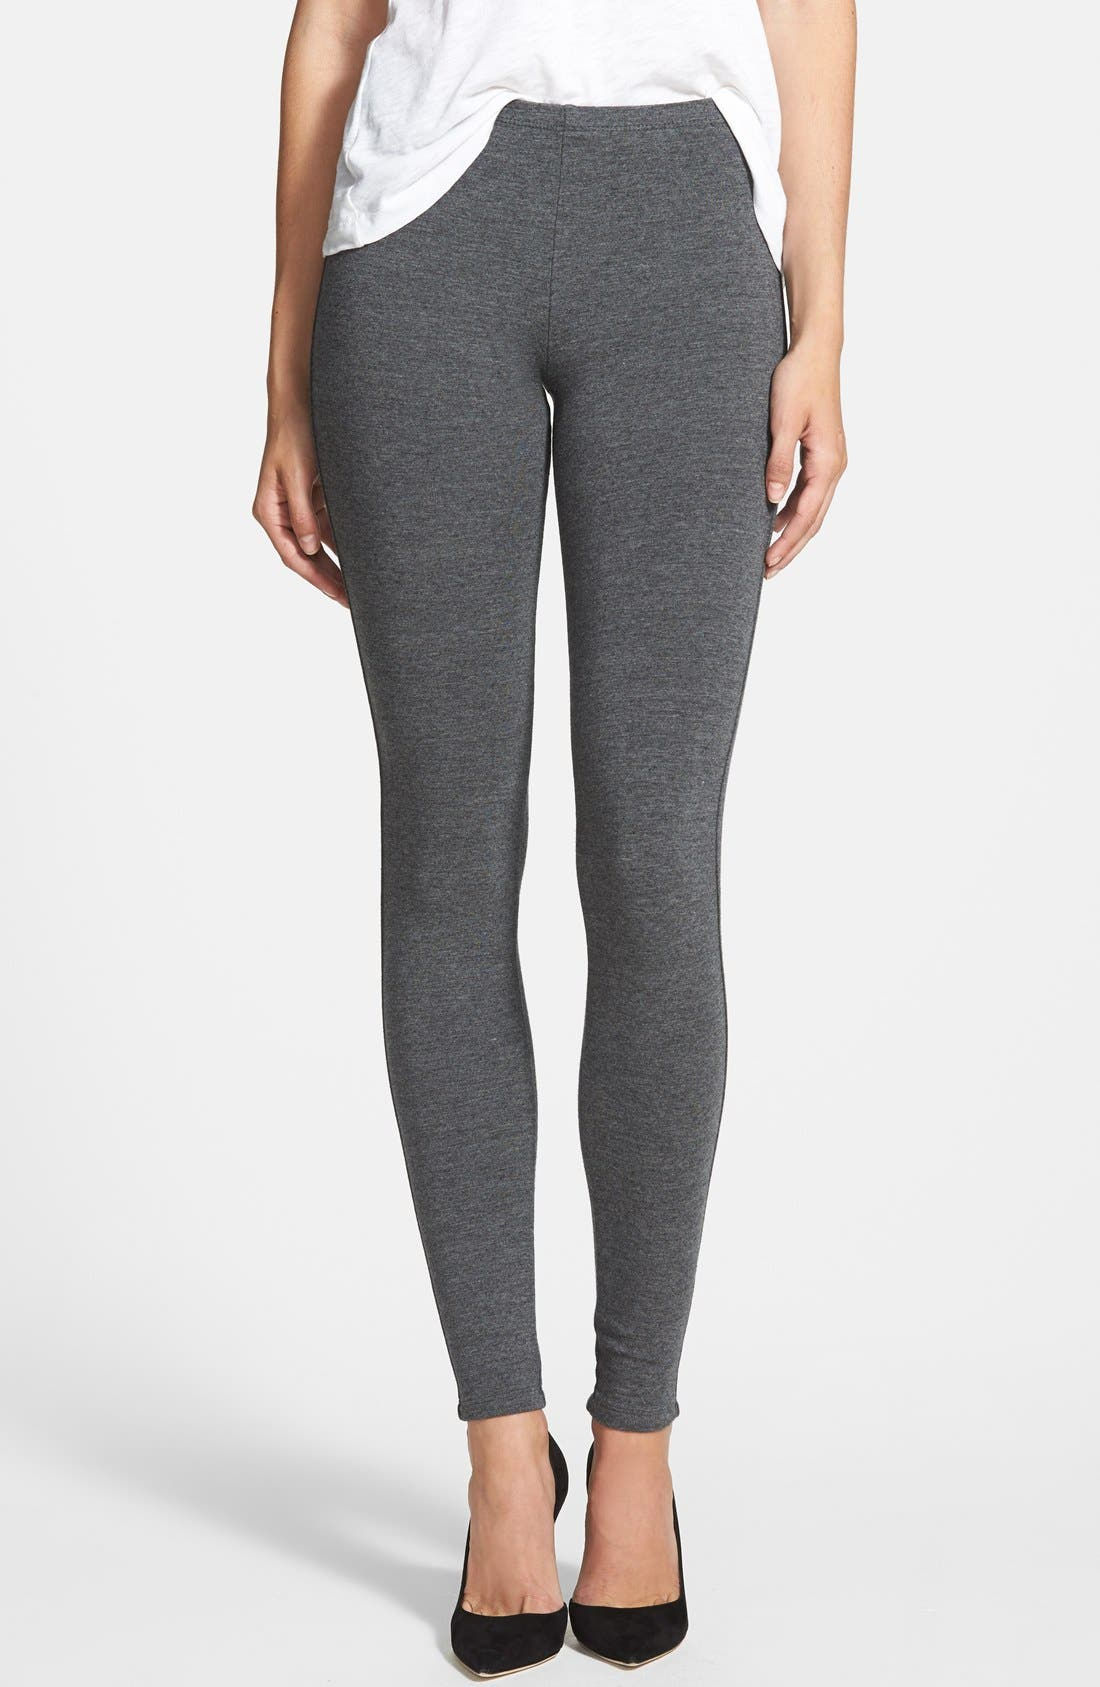 French Terry Leggings,                         Main,                         color, CHARCOAL